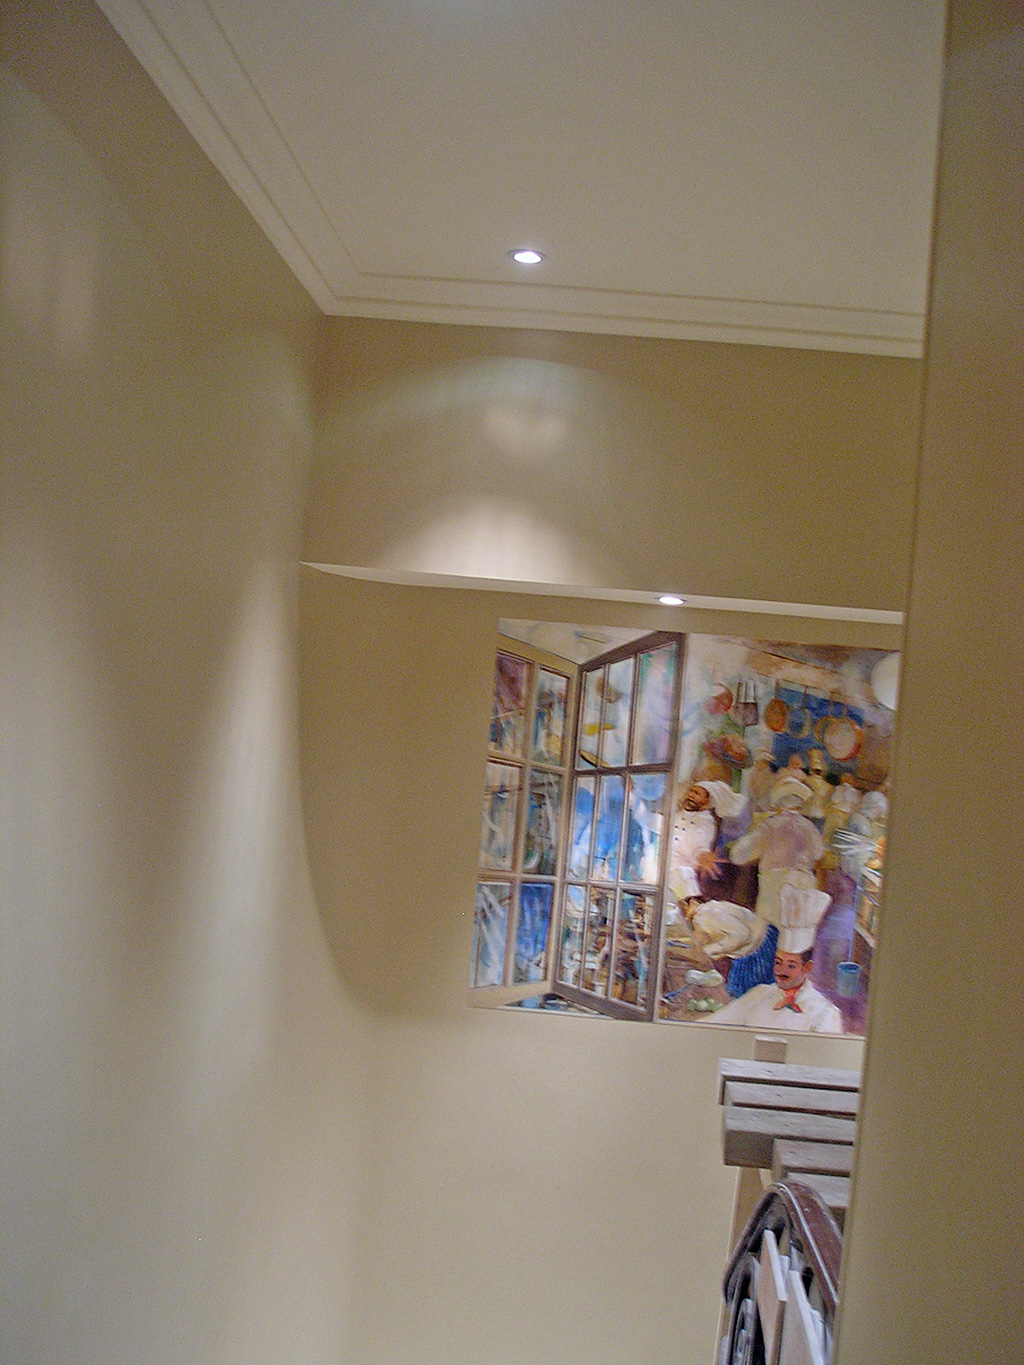 The Kitchen window mural installed on the staircase to the Minstrels Gallery at the RAC Club, Pall Mall, London.